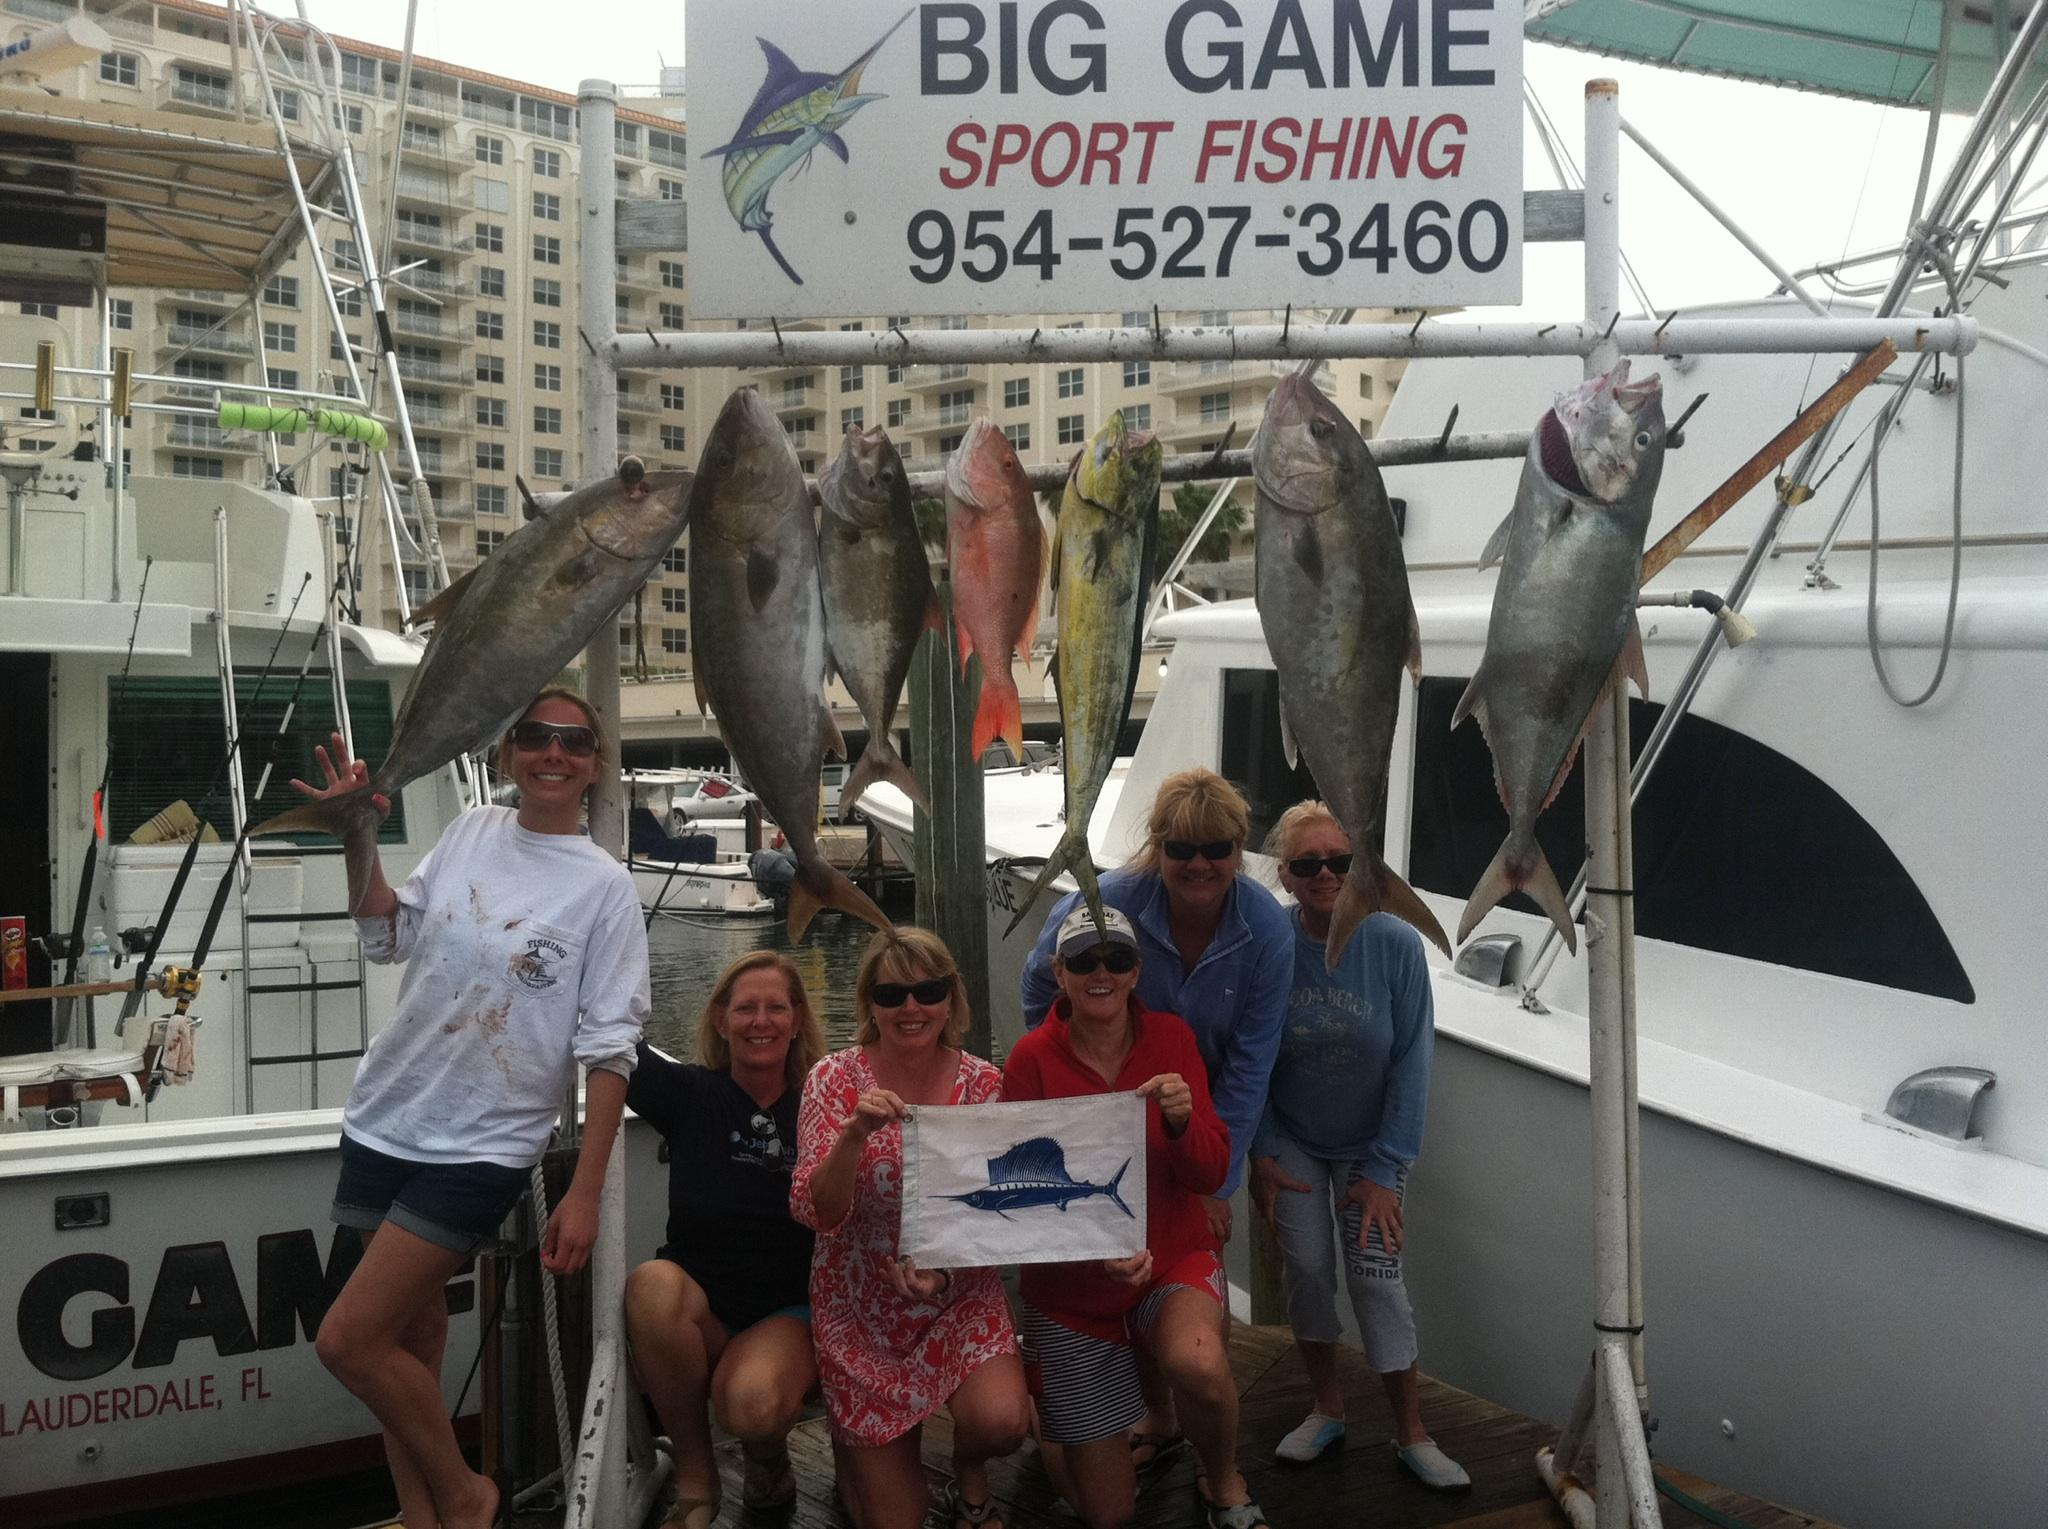 Awesome ft lauderdale fishing charter fishing headquarters for Fort lauderdale fishing charters